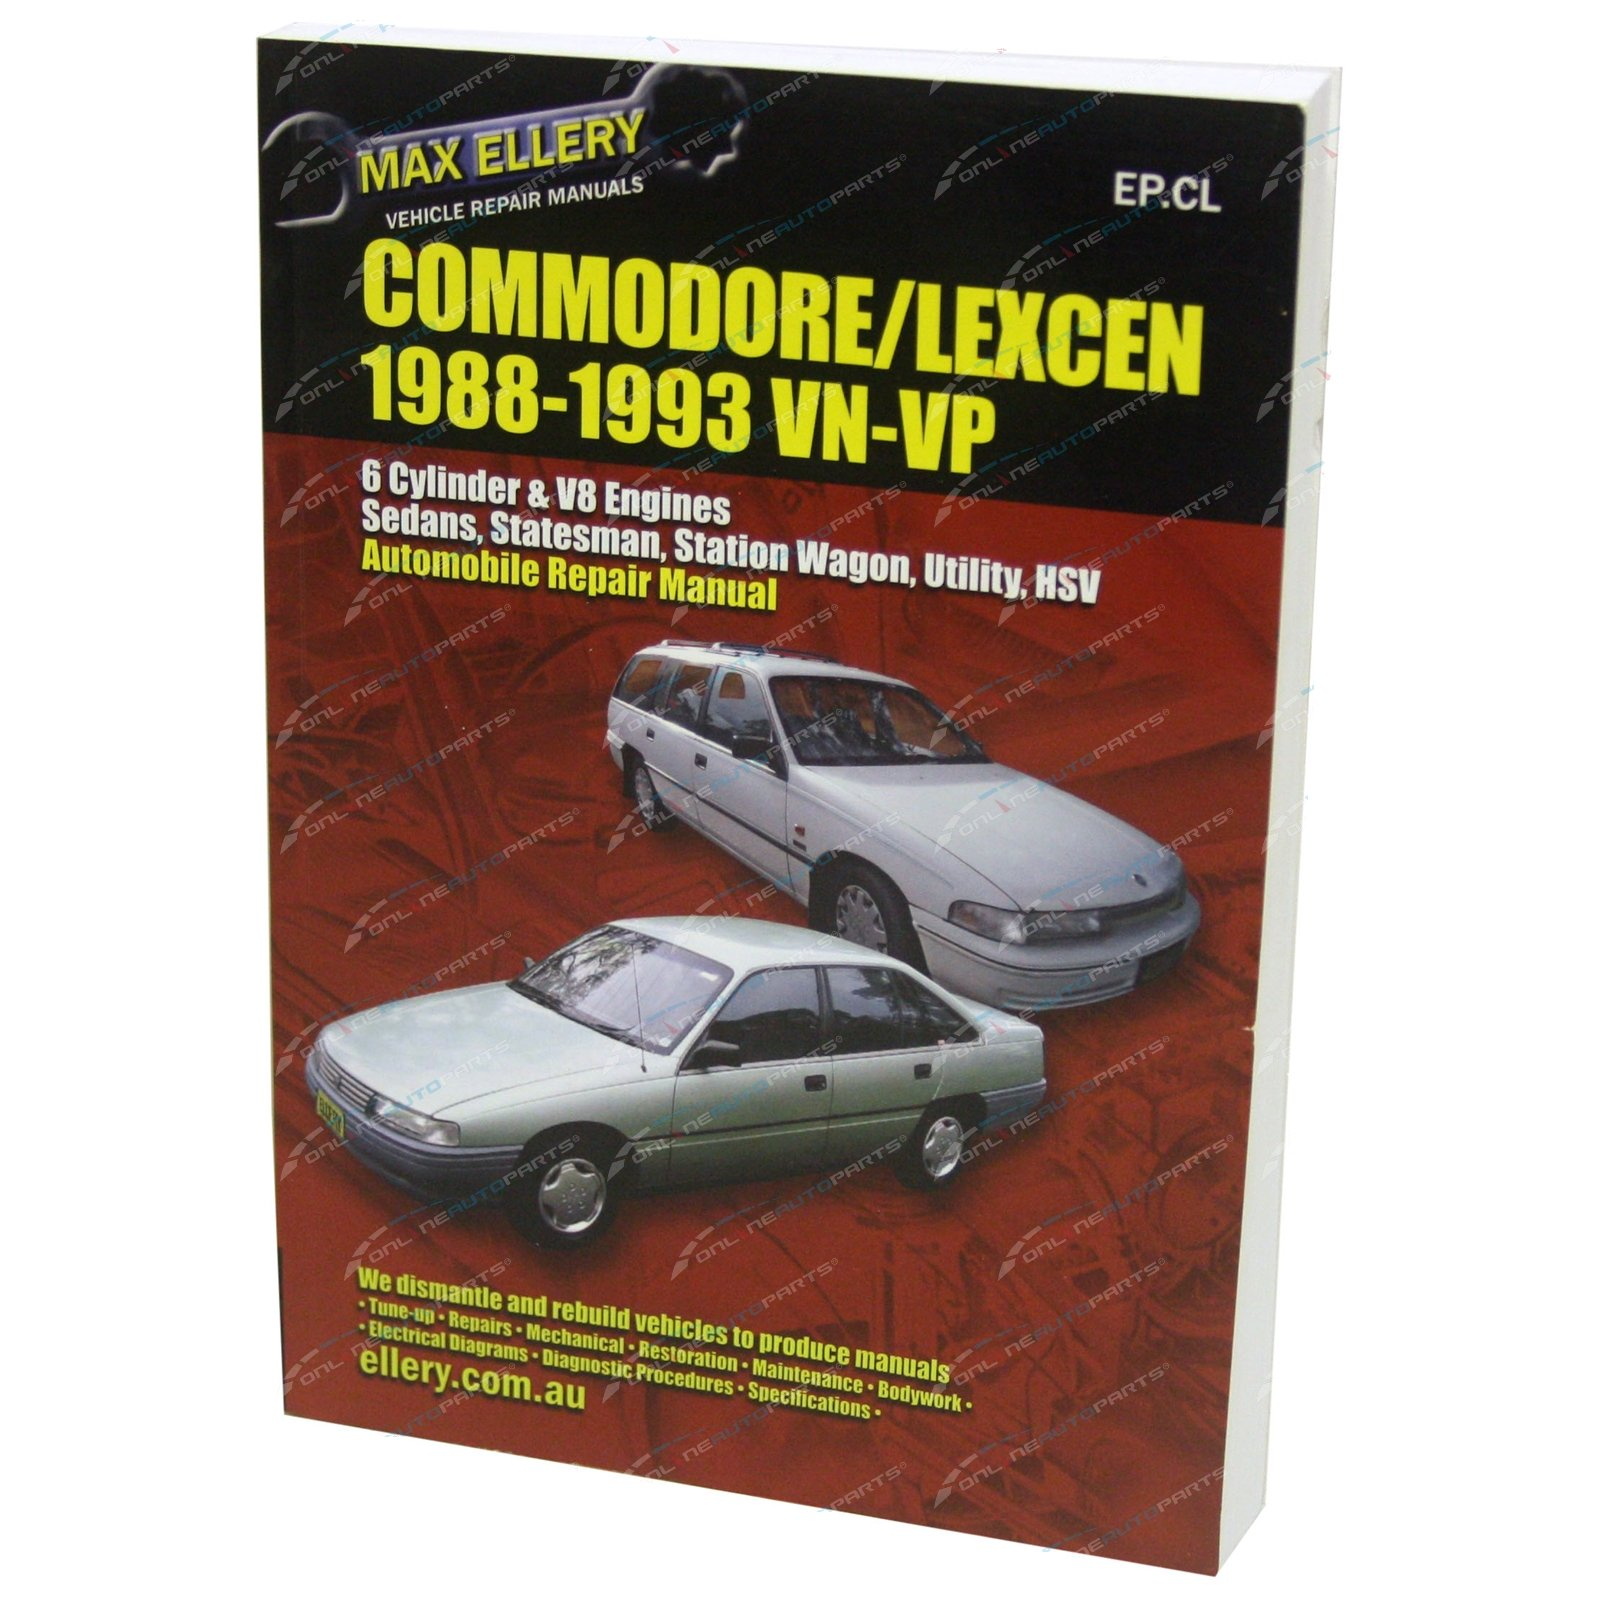 new workshop repair manual commodore vn vp v6 v8 456page book rh onlineautoparts com au Holden Commodore VP VP Commodore Wagon P-plater Spec